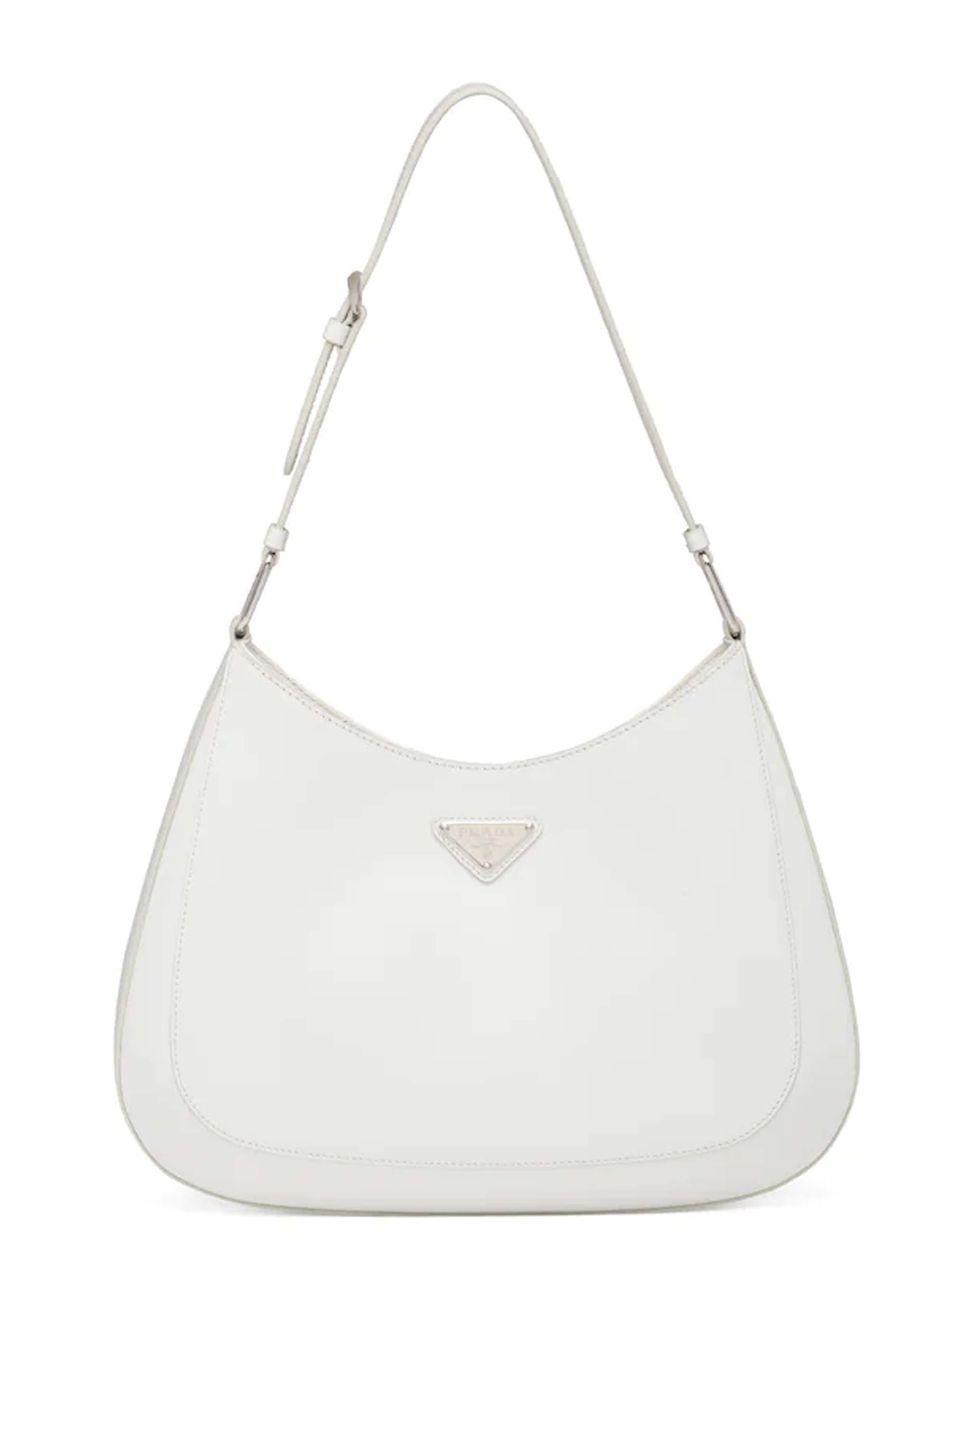 """<p><a class=""""link rapid-noclick-resp"""" href=""""https://www.prada.com/gb/en/products.prada_cleo_brushed_leather_shoulder_bag.1BC156_ZO6_F0009_V_OOO.html"""" rel=""""nofollow noopener"""" target=""""_blank"""" data-ylk=""""slk:SHOP NOW"""">SHOP NOW</a></p><p>The Cleo bag takes influence from archival Prada. With its sleek and streamline appearance, it is not hard to see why it has been such a huge hit with fashion editors and influencers worldwide.</p><p>Leather bag, £1,850, <a href=""""https://www.prada.com/gb/en/products.prada_cleo_brushed_leather_shoulder_bag.1BC156_ZO6_F0009_V_OOO.html"""" rel=""""nofollow noopener"""" target=""""_blank"""" data-ylk=""""slk:Prada"""" class=""""link rapid-noclick-resp"""">Prada</a></p>"""